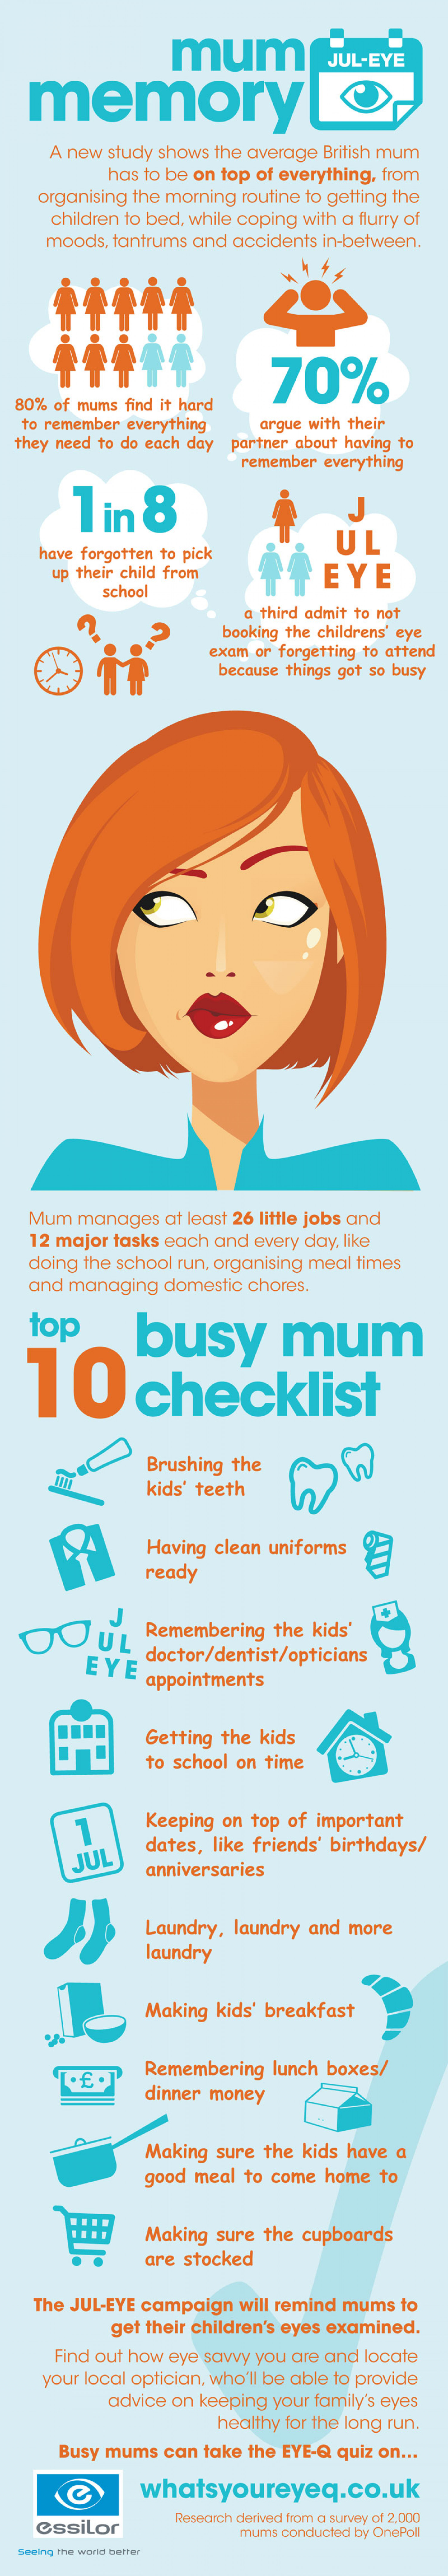 Mum Memory - the list of things mum need to remember every morning Infographic